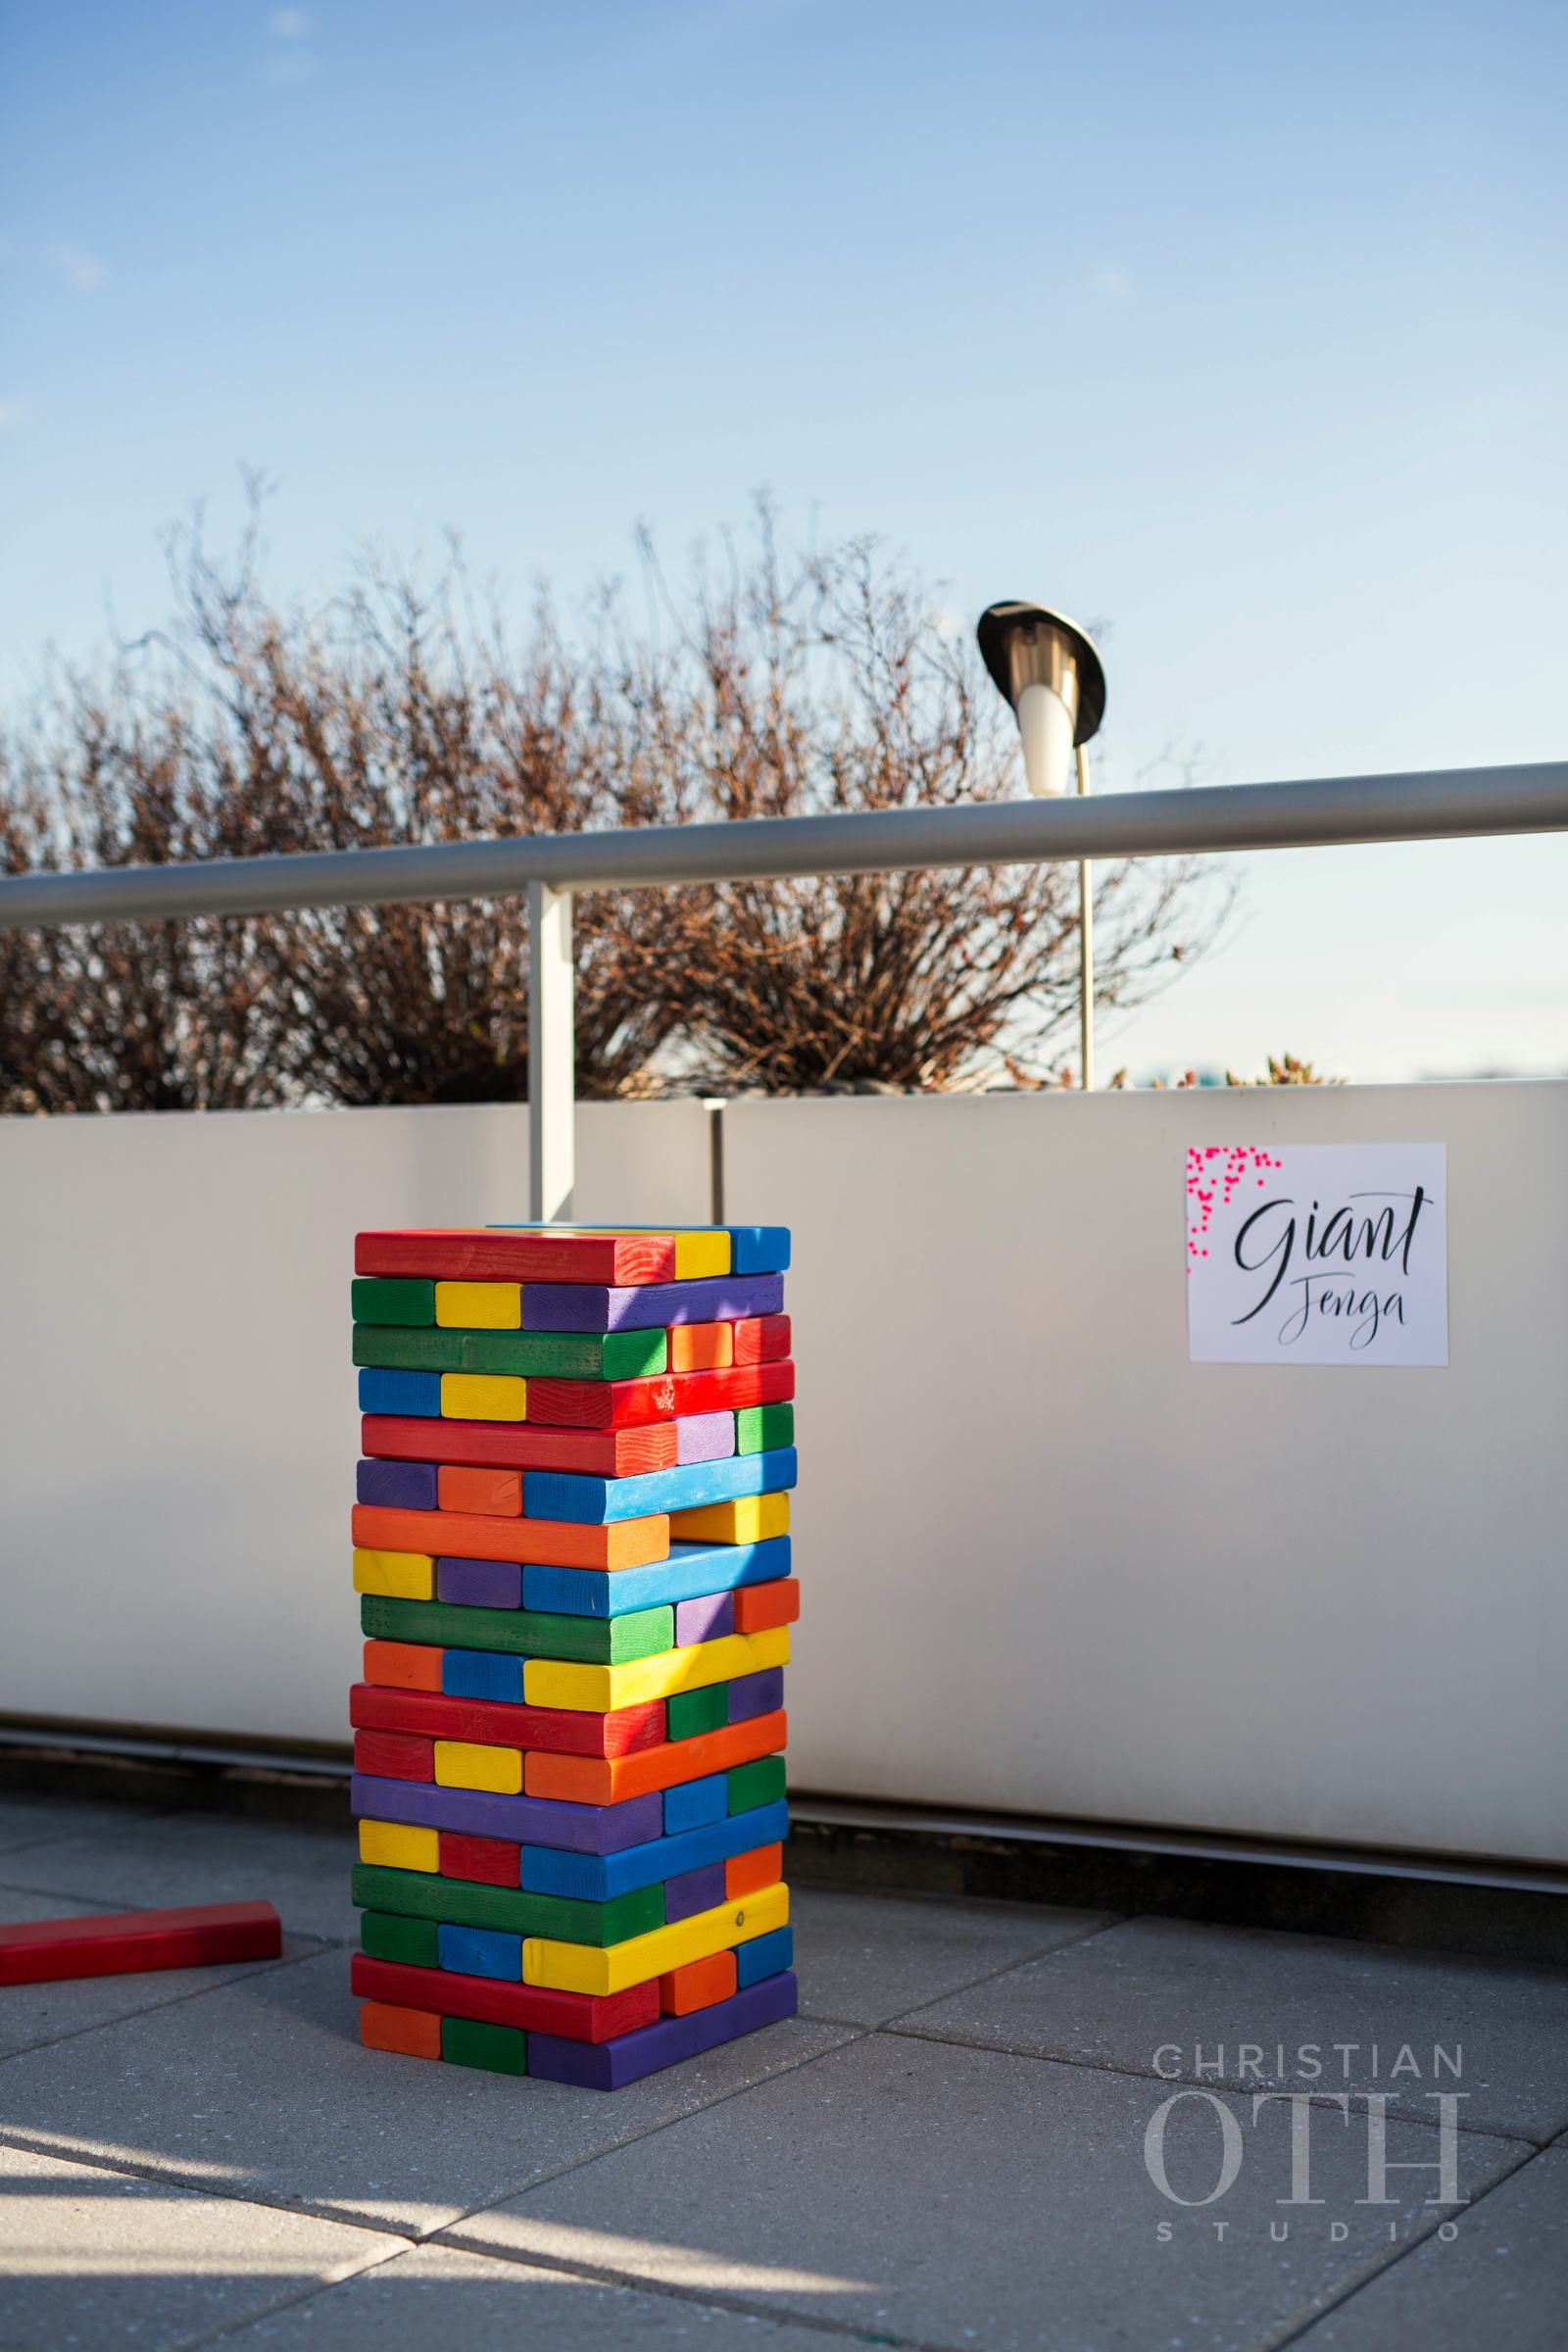 GIANT JENGA IN THE COLORS OF THE RAINBOW